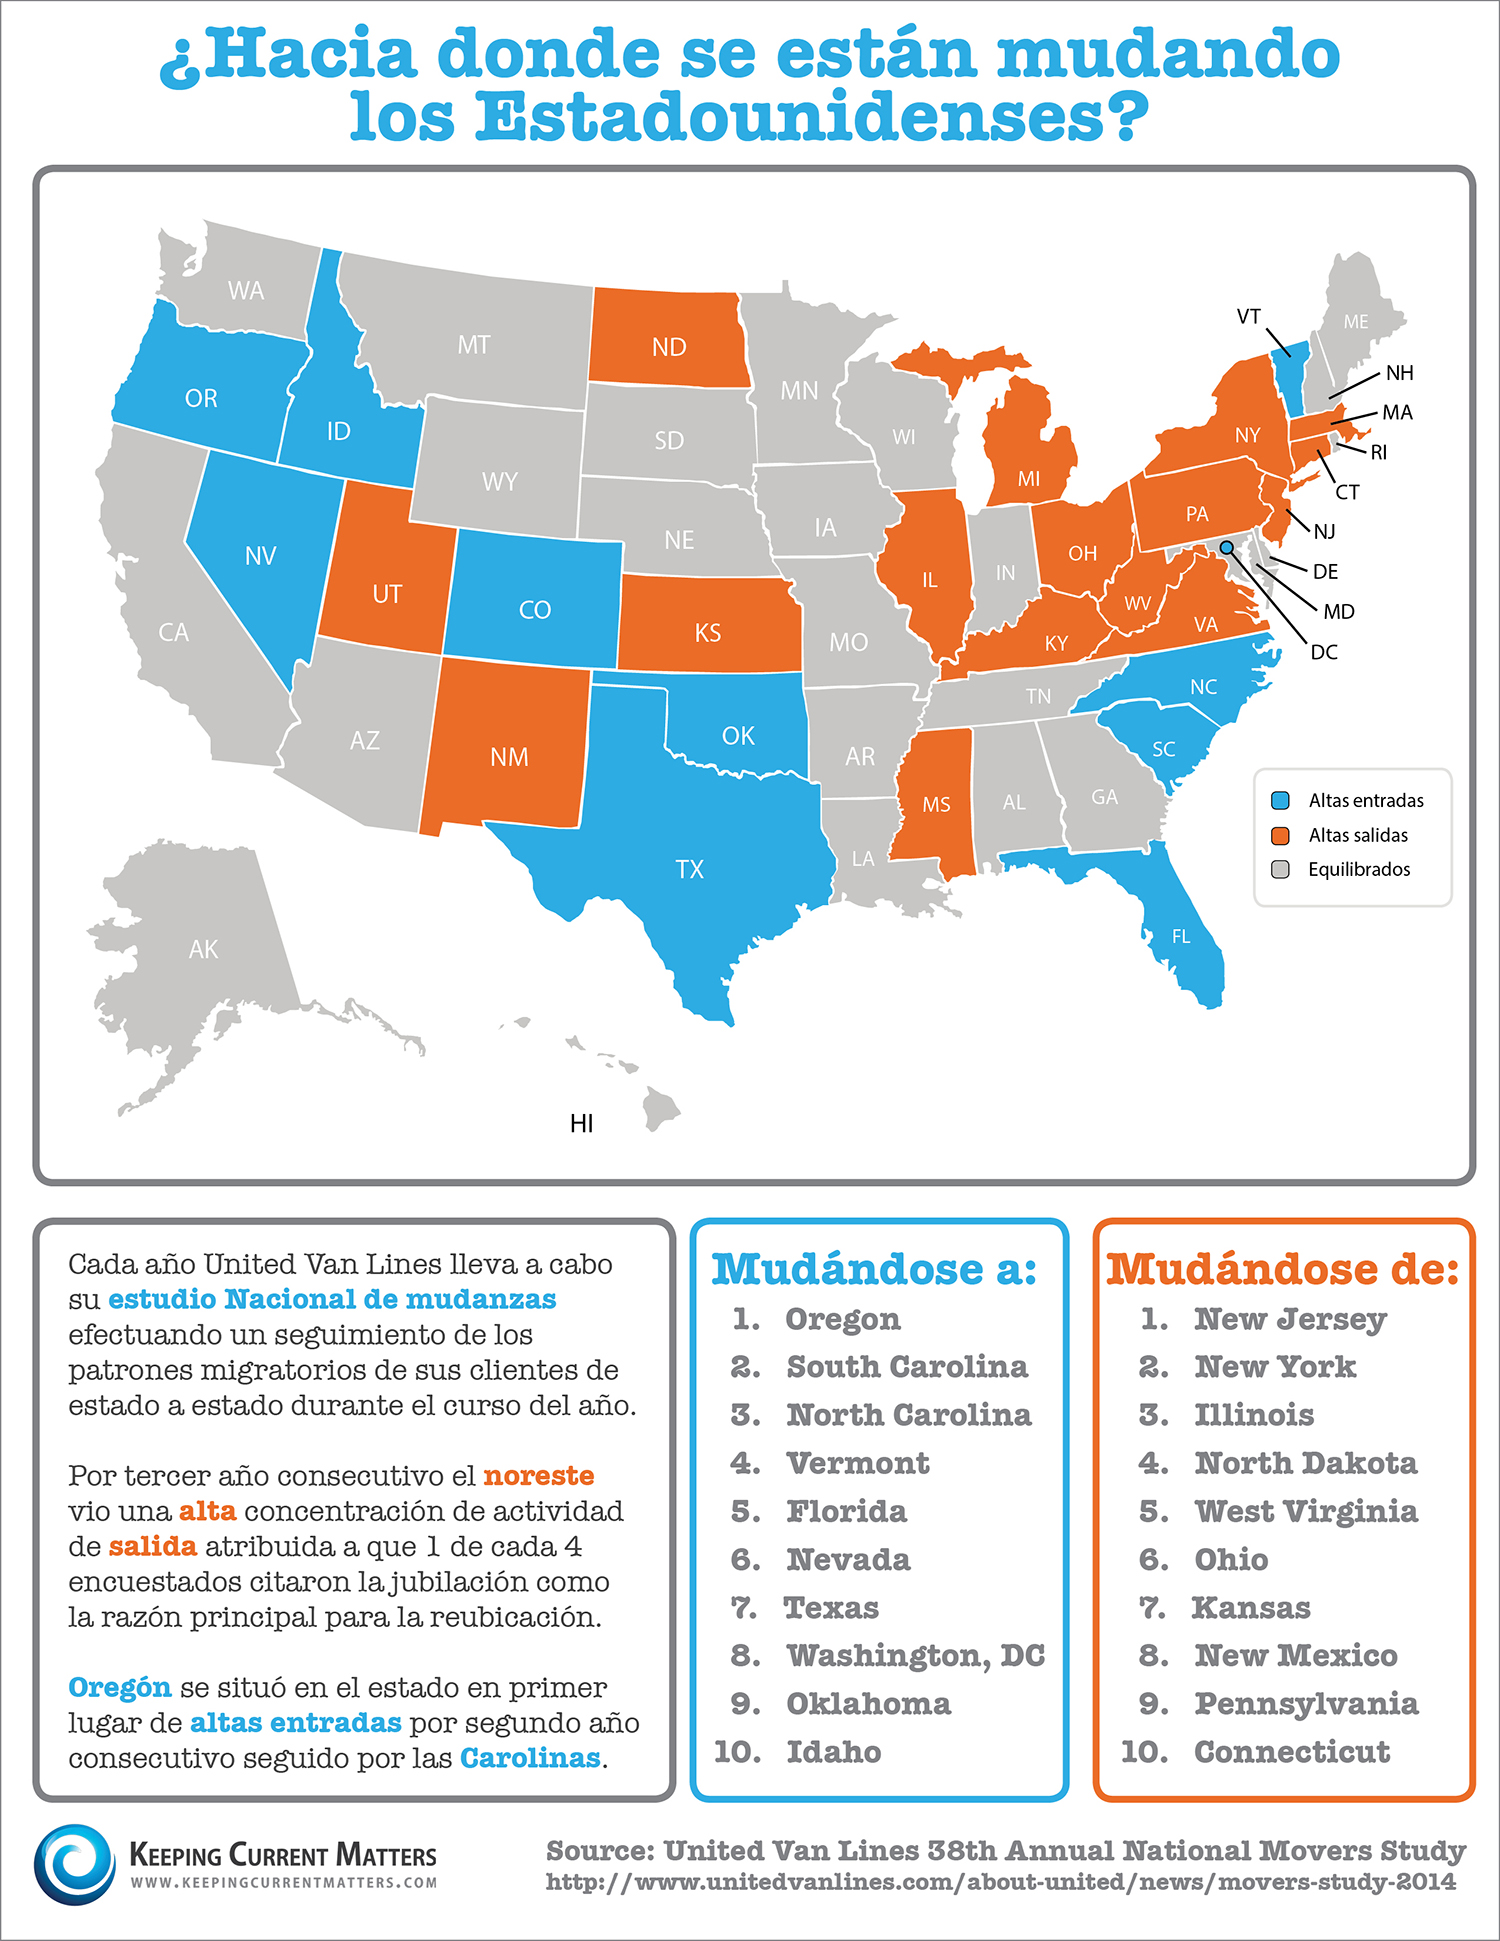 Moving Across America [INFOGRAPHIC] | Keeping Current Matters